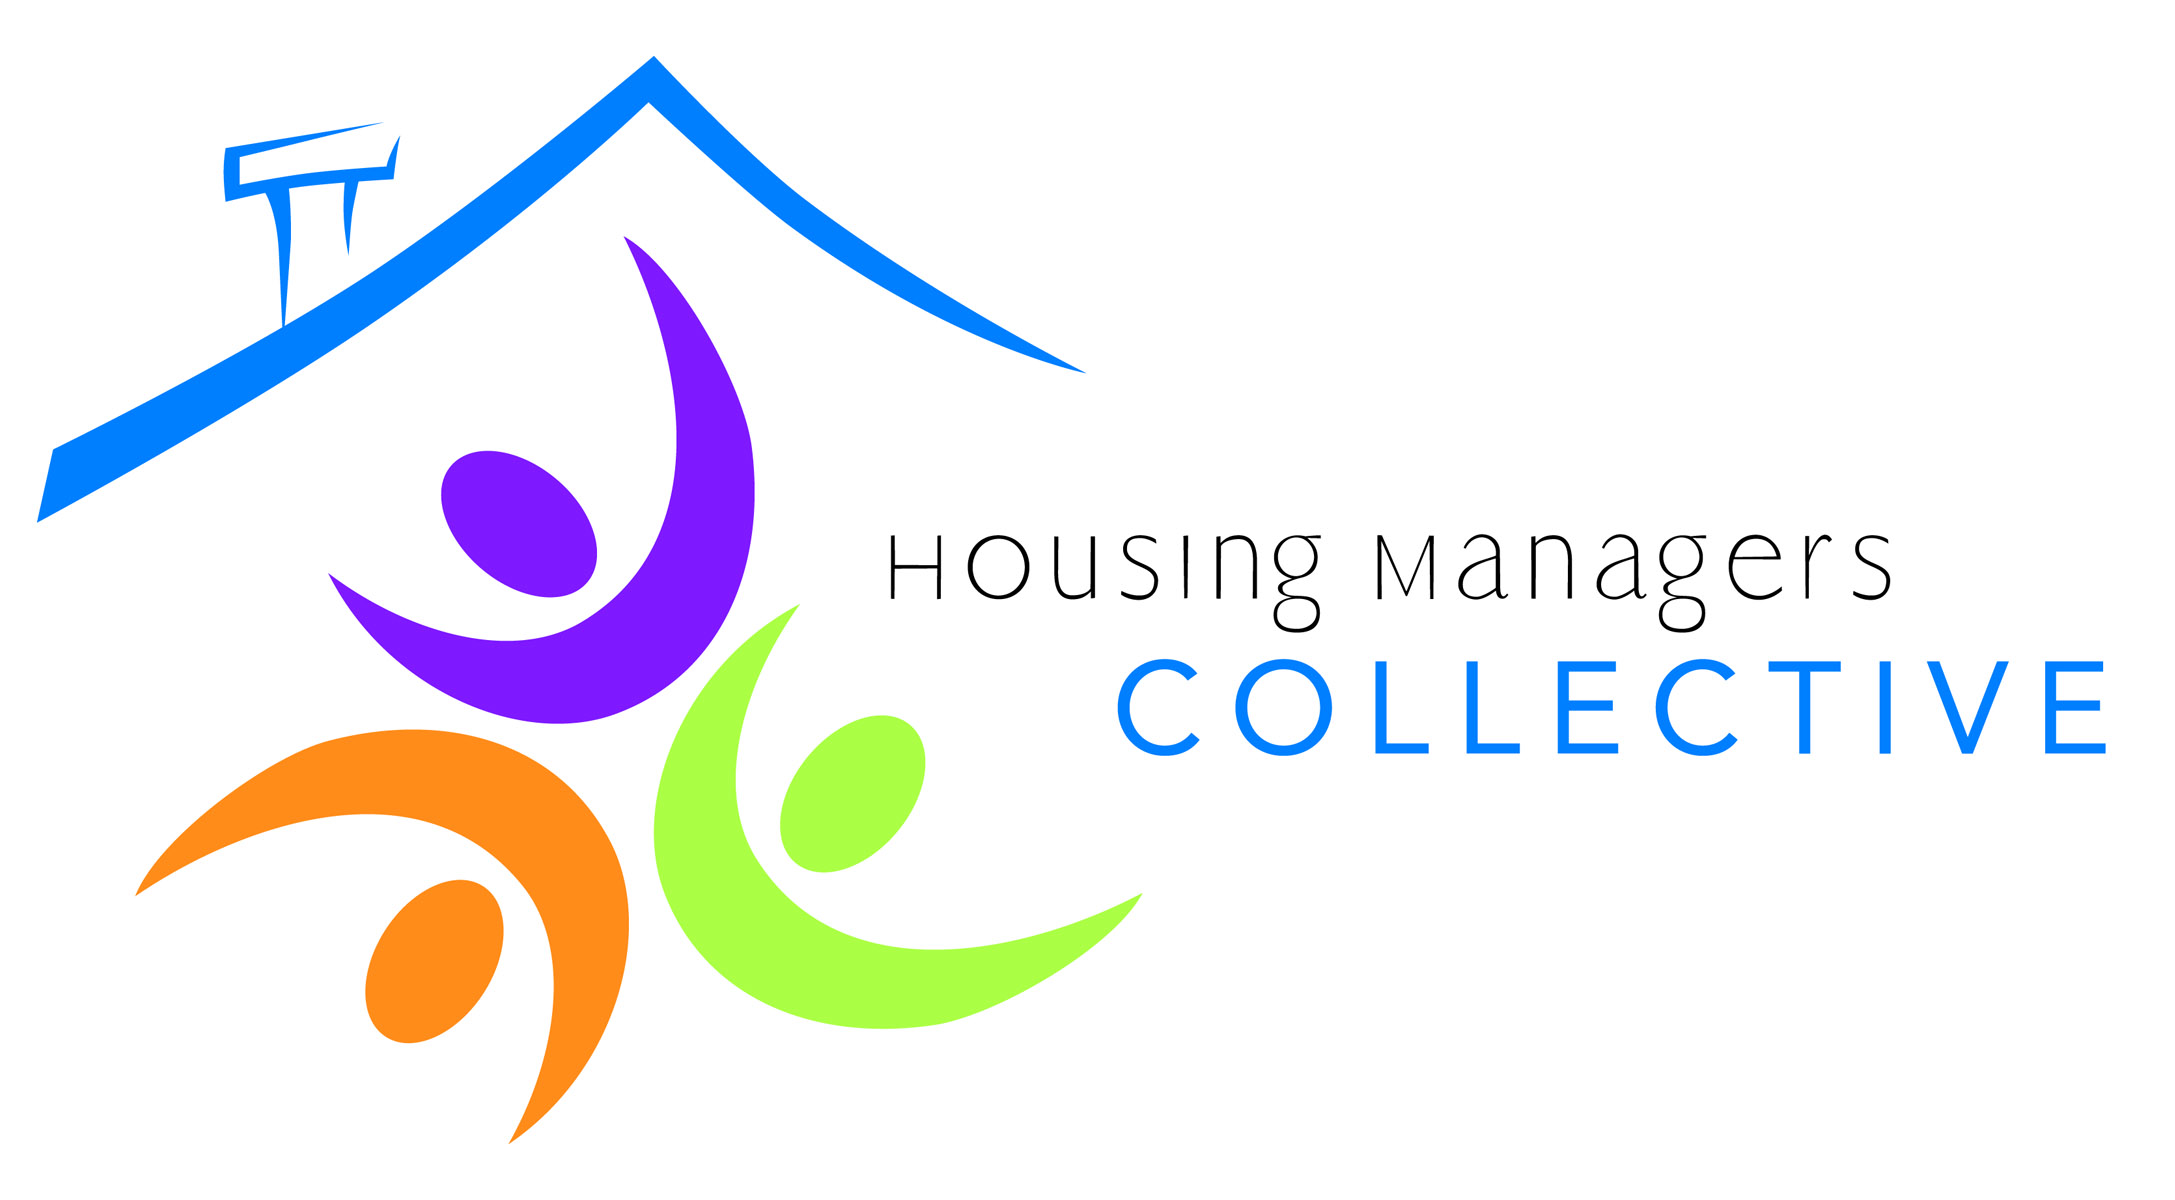 housing_managers_collective_01.jpg